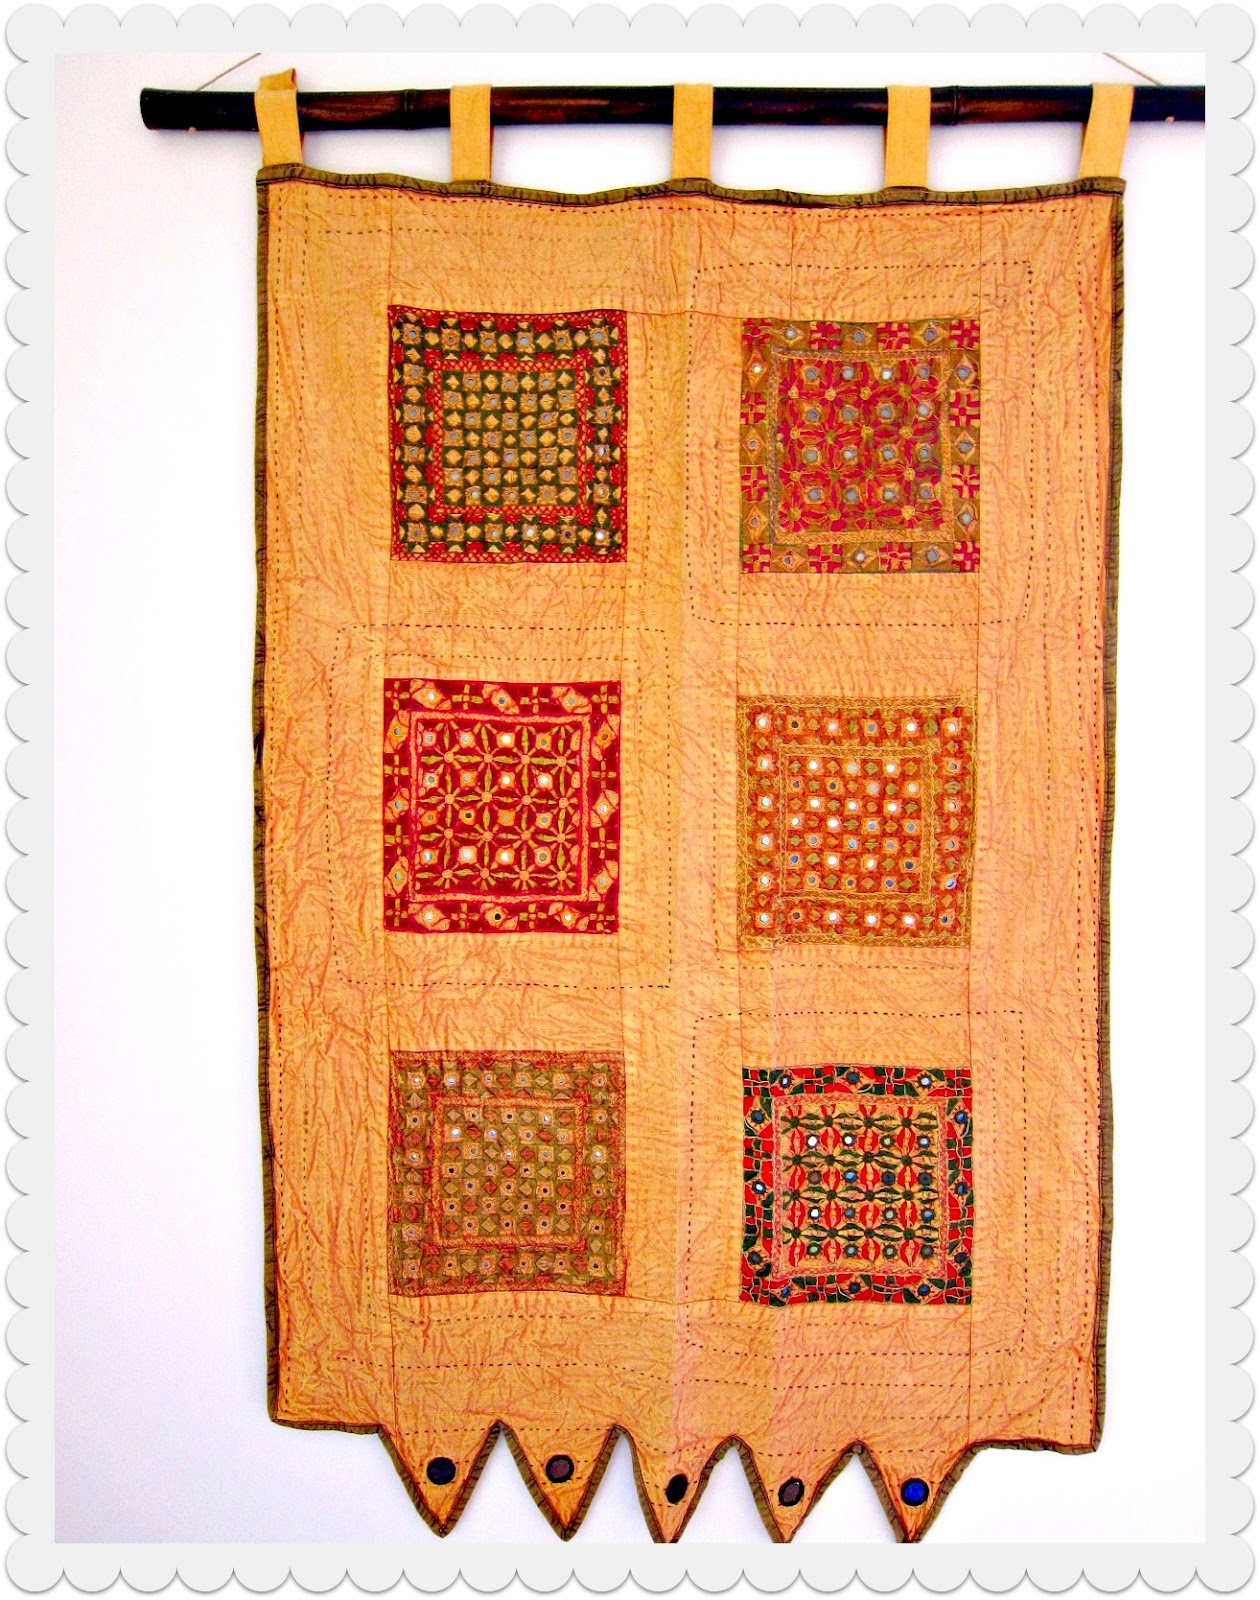 Comindian Wall Hanging Designs : Kikay Designs: My Obssession with Wall Hangings